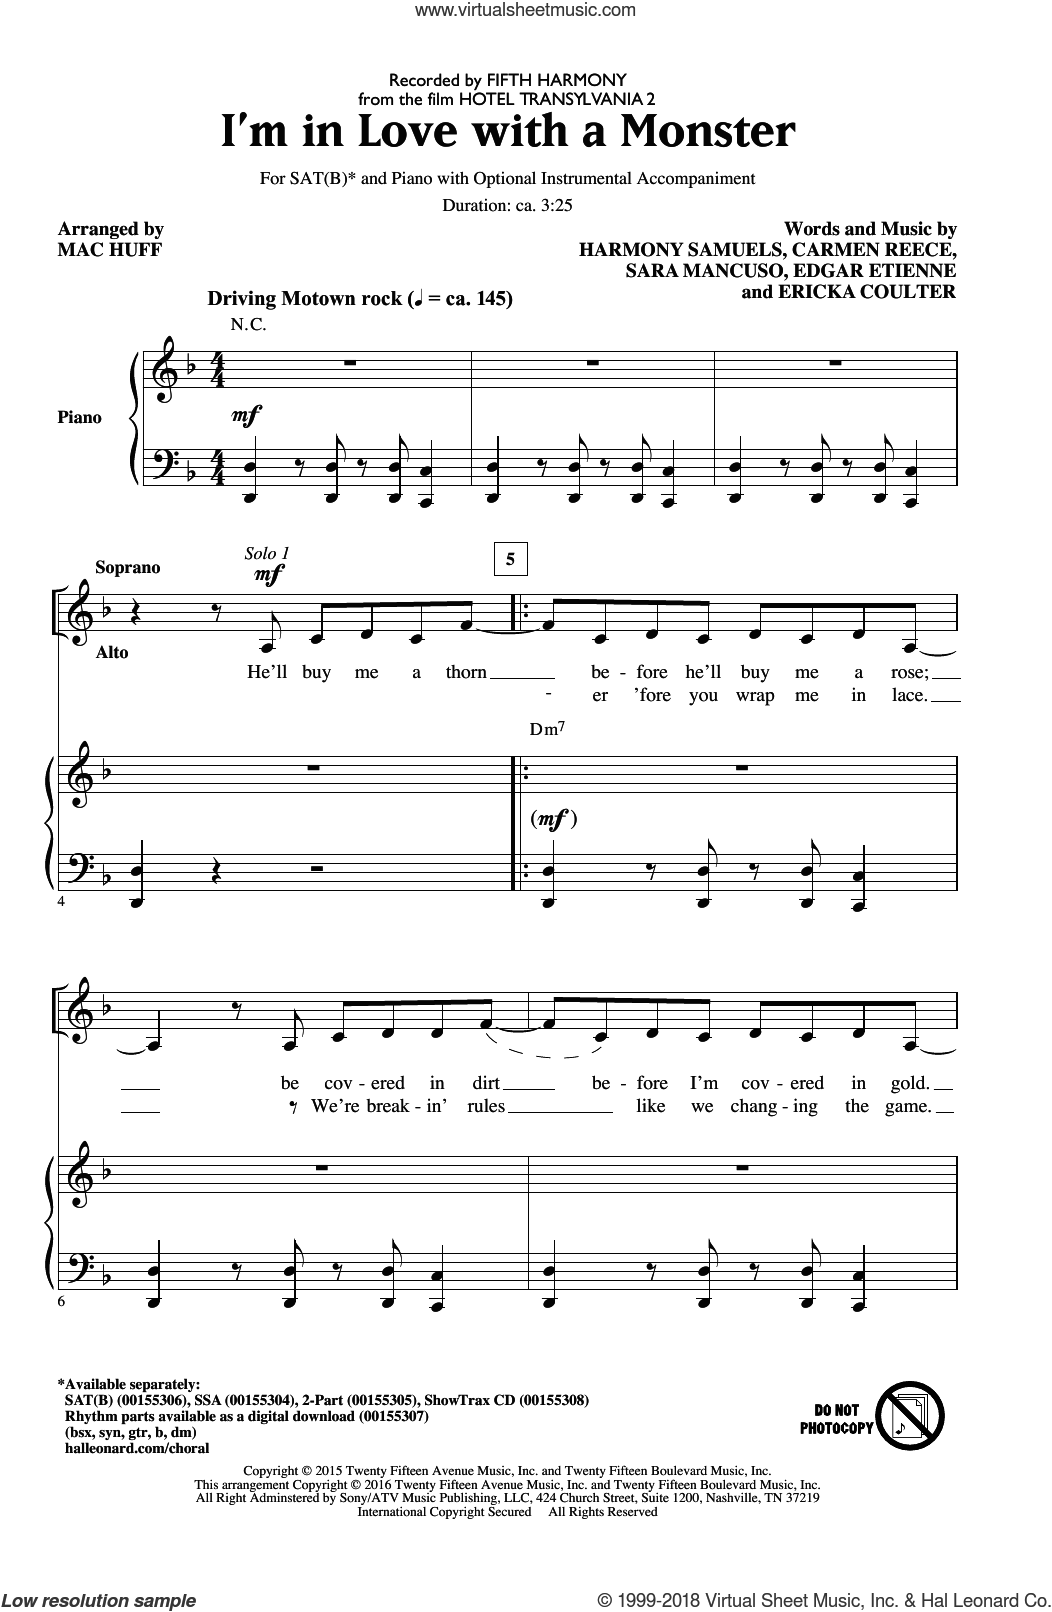 I'm In Love With A Monster sheet music for choir (SATB: soprano, alto, tenor, bass) by Mac Huff, Fifth Harmony, Carmen Reece, Edgar Etienne, Ericka Coulter, Harmony Samuels and Sara Mancuso, intermediate skill level